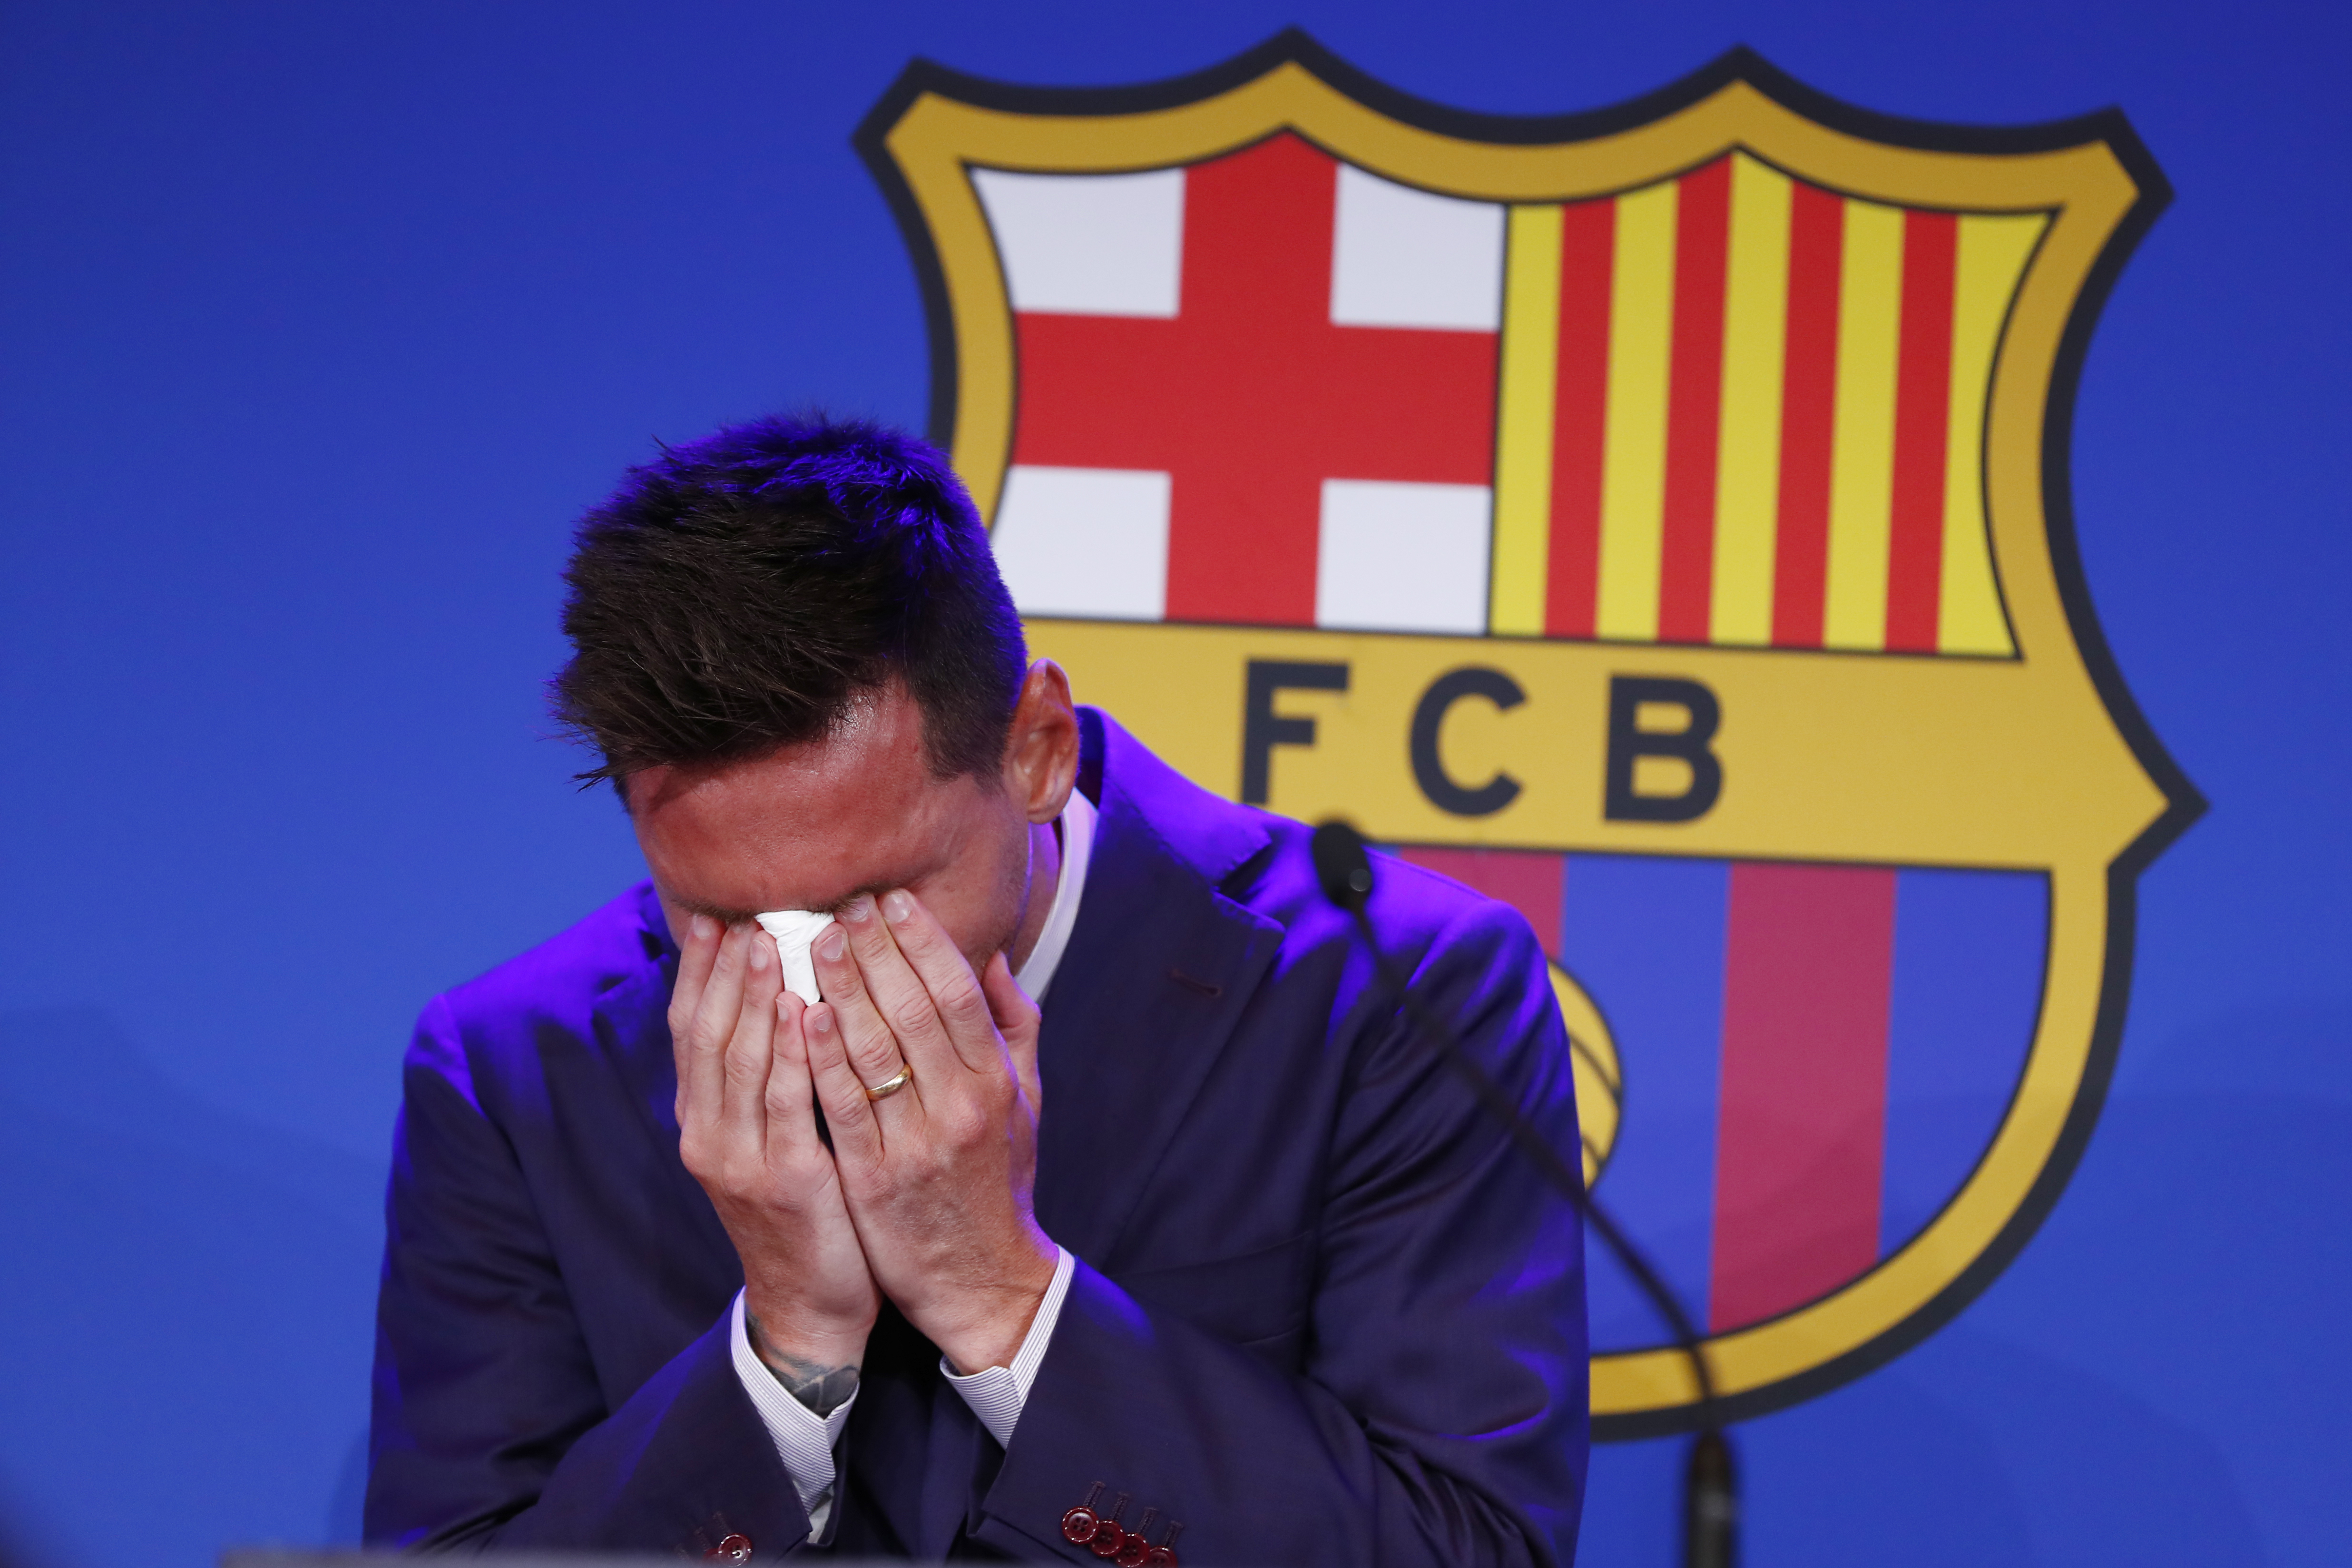 Lionel Messi cries at the start of a press conference at the Camp Nou stadium in Barcelona.